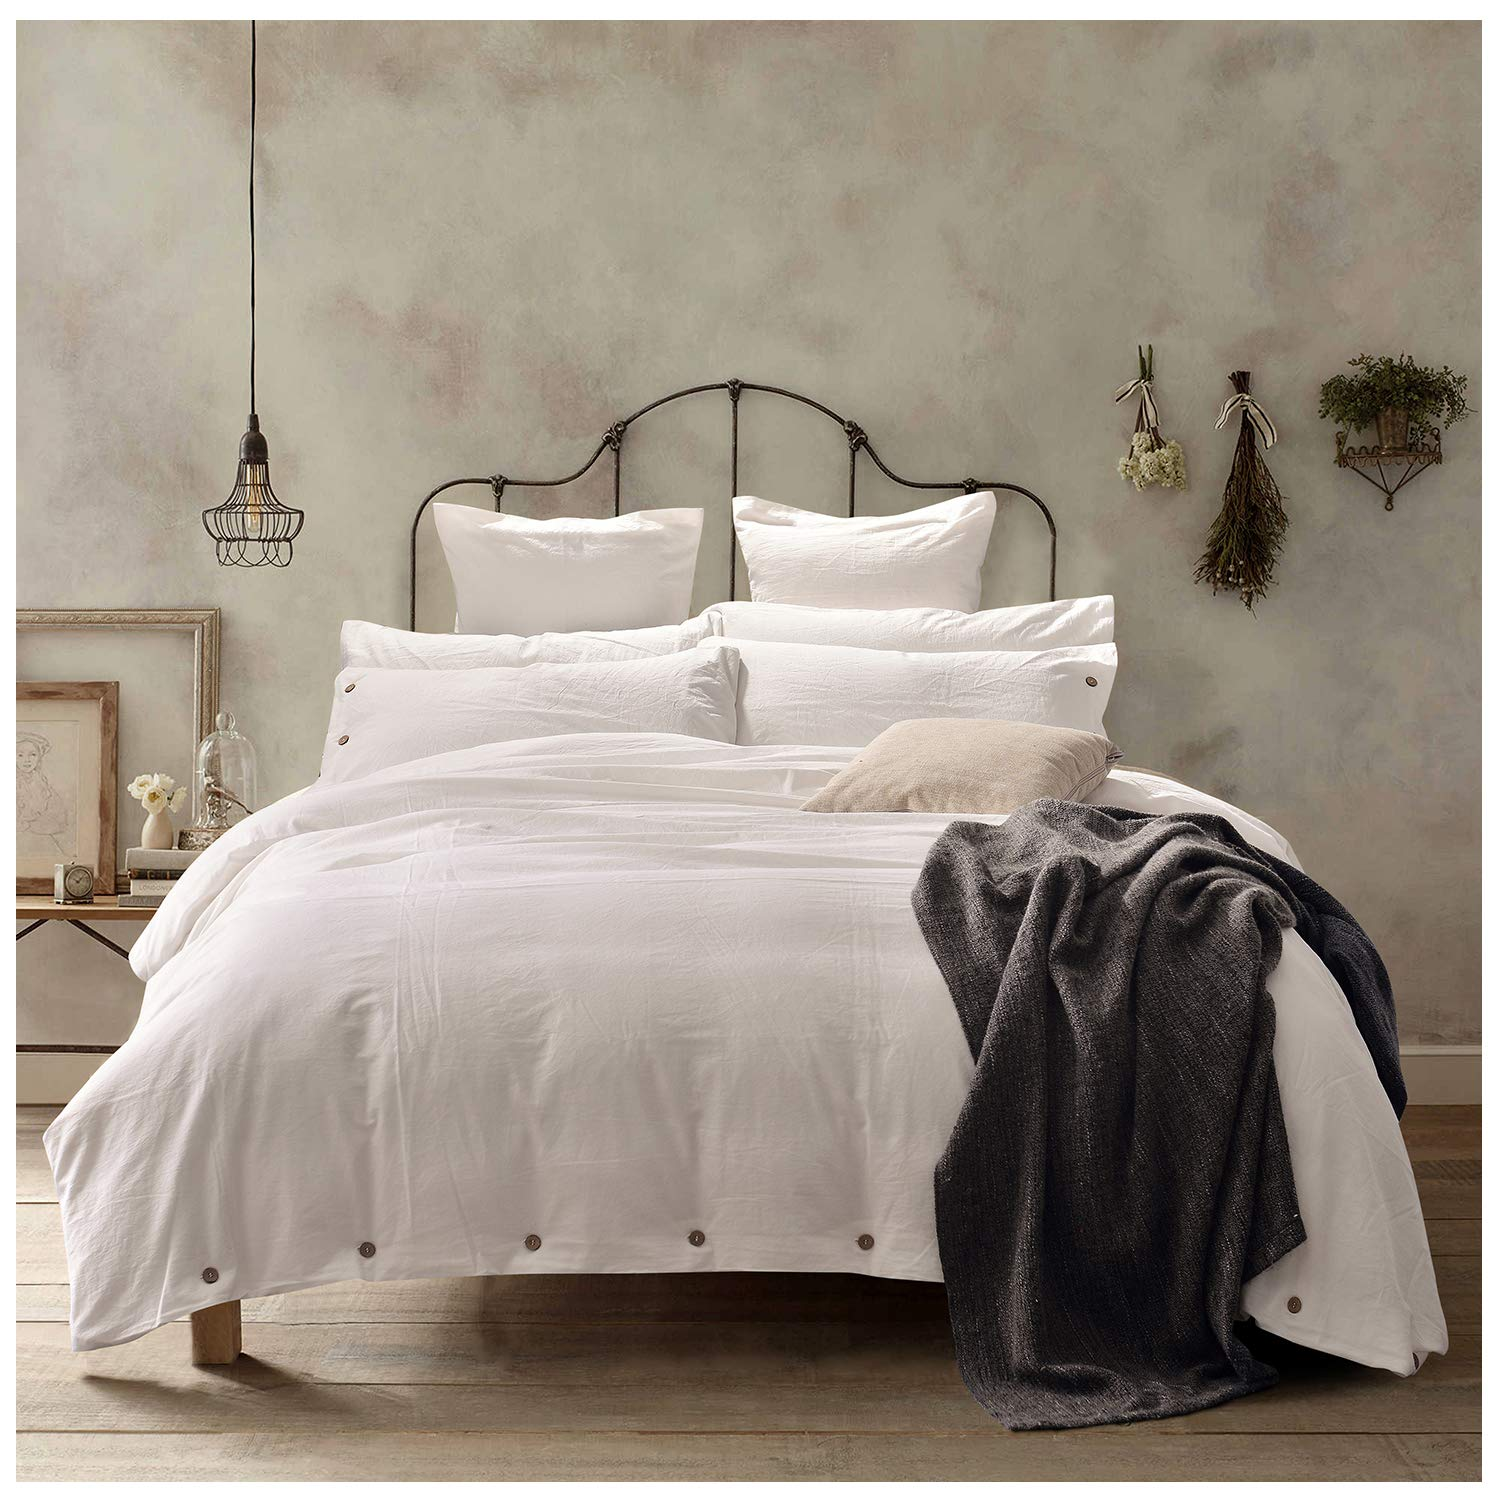 a96339fe4c4 Best Rated in Bedding Duvet Cover Sets   Helpful Customer Reviews ...